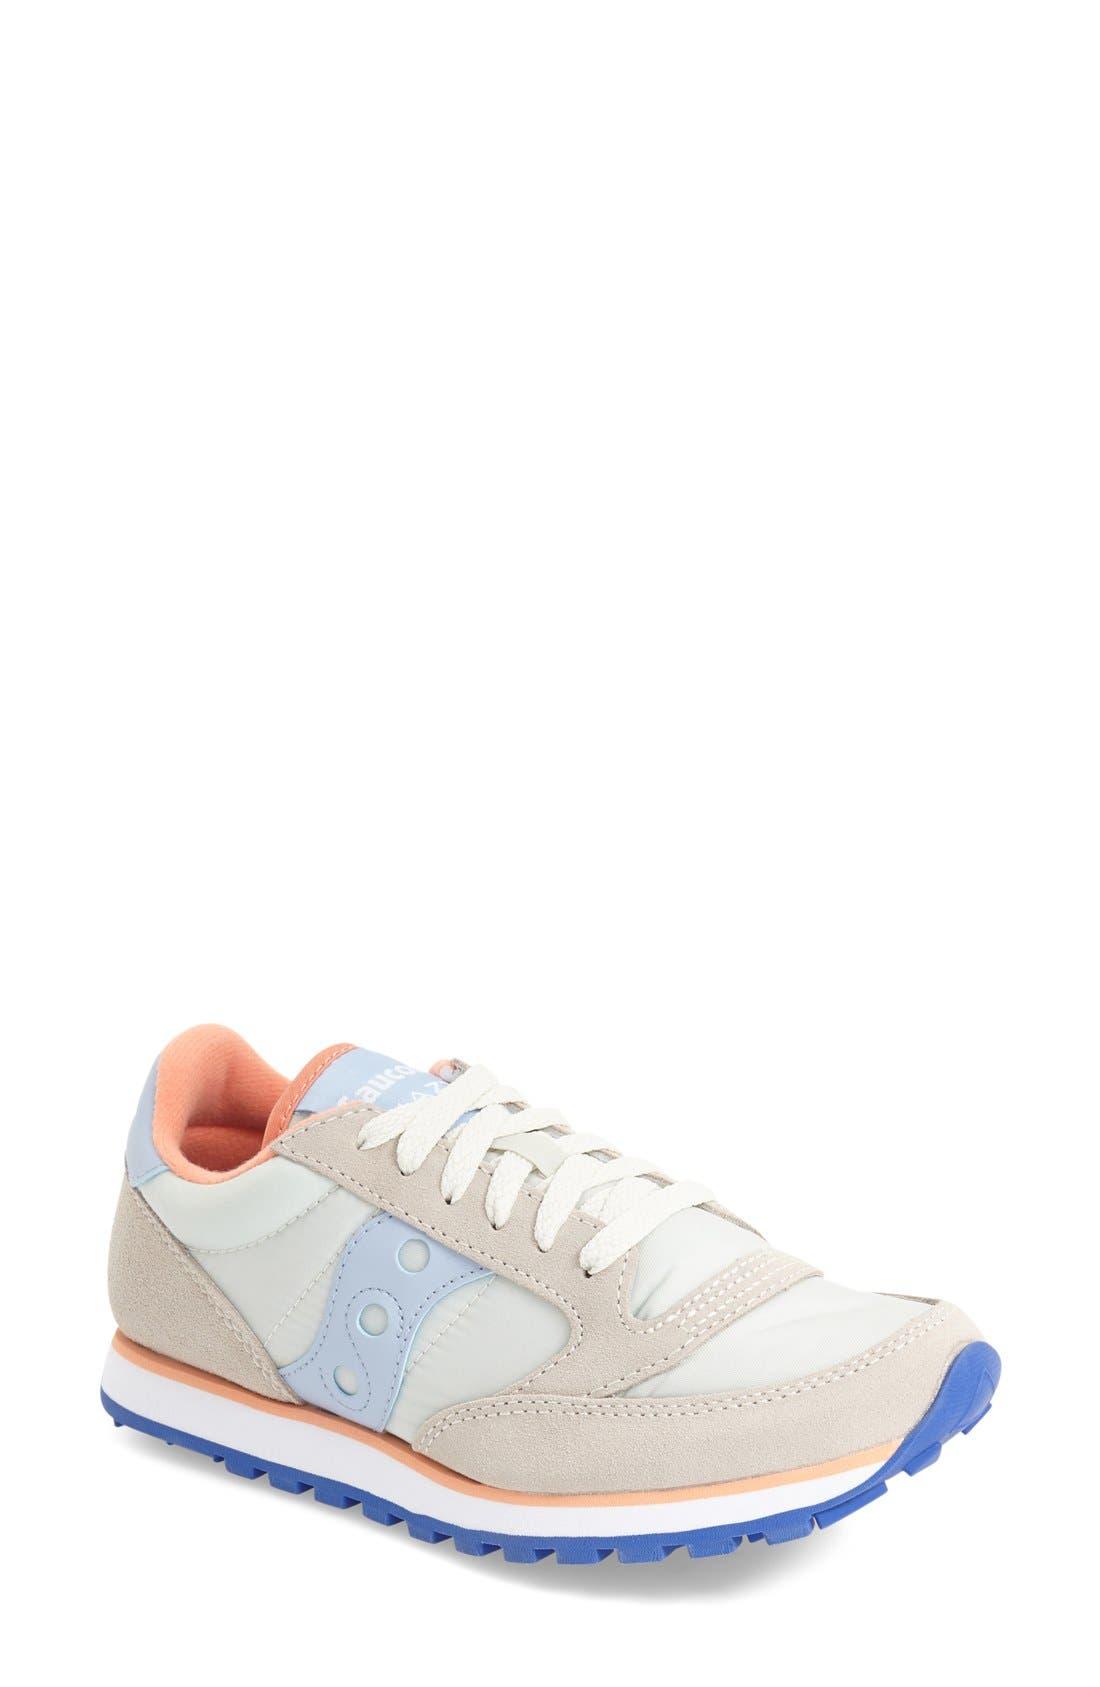 Main Image - Saucony 'Jazz - Low Pro' Sneaker (Women)